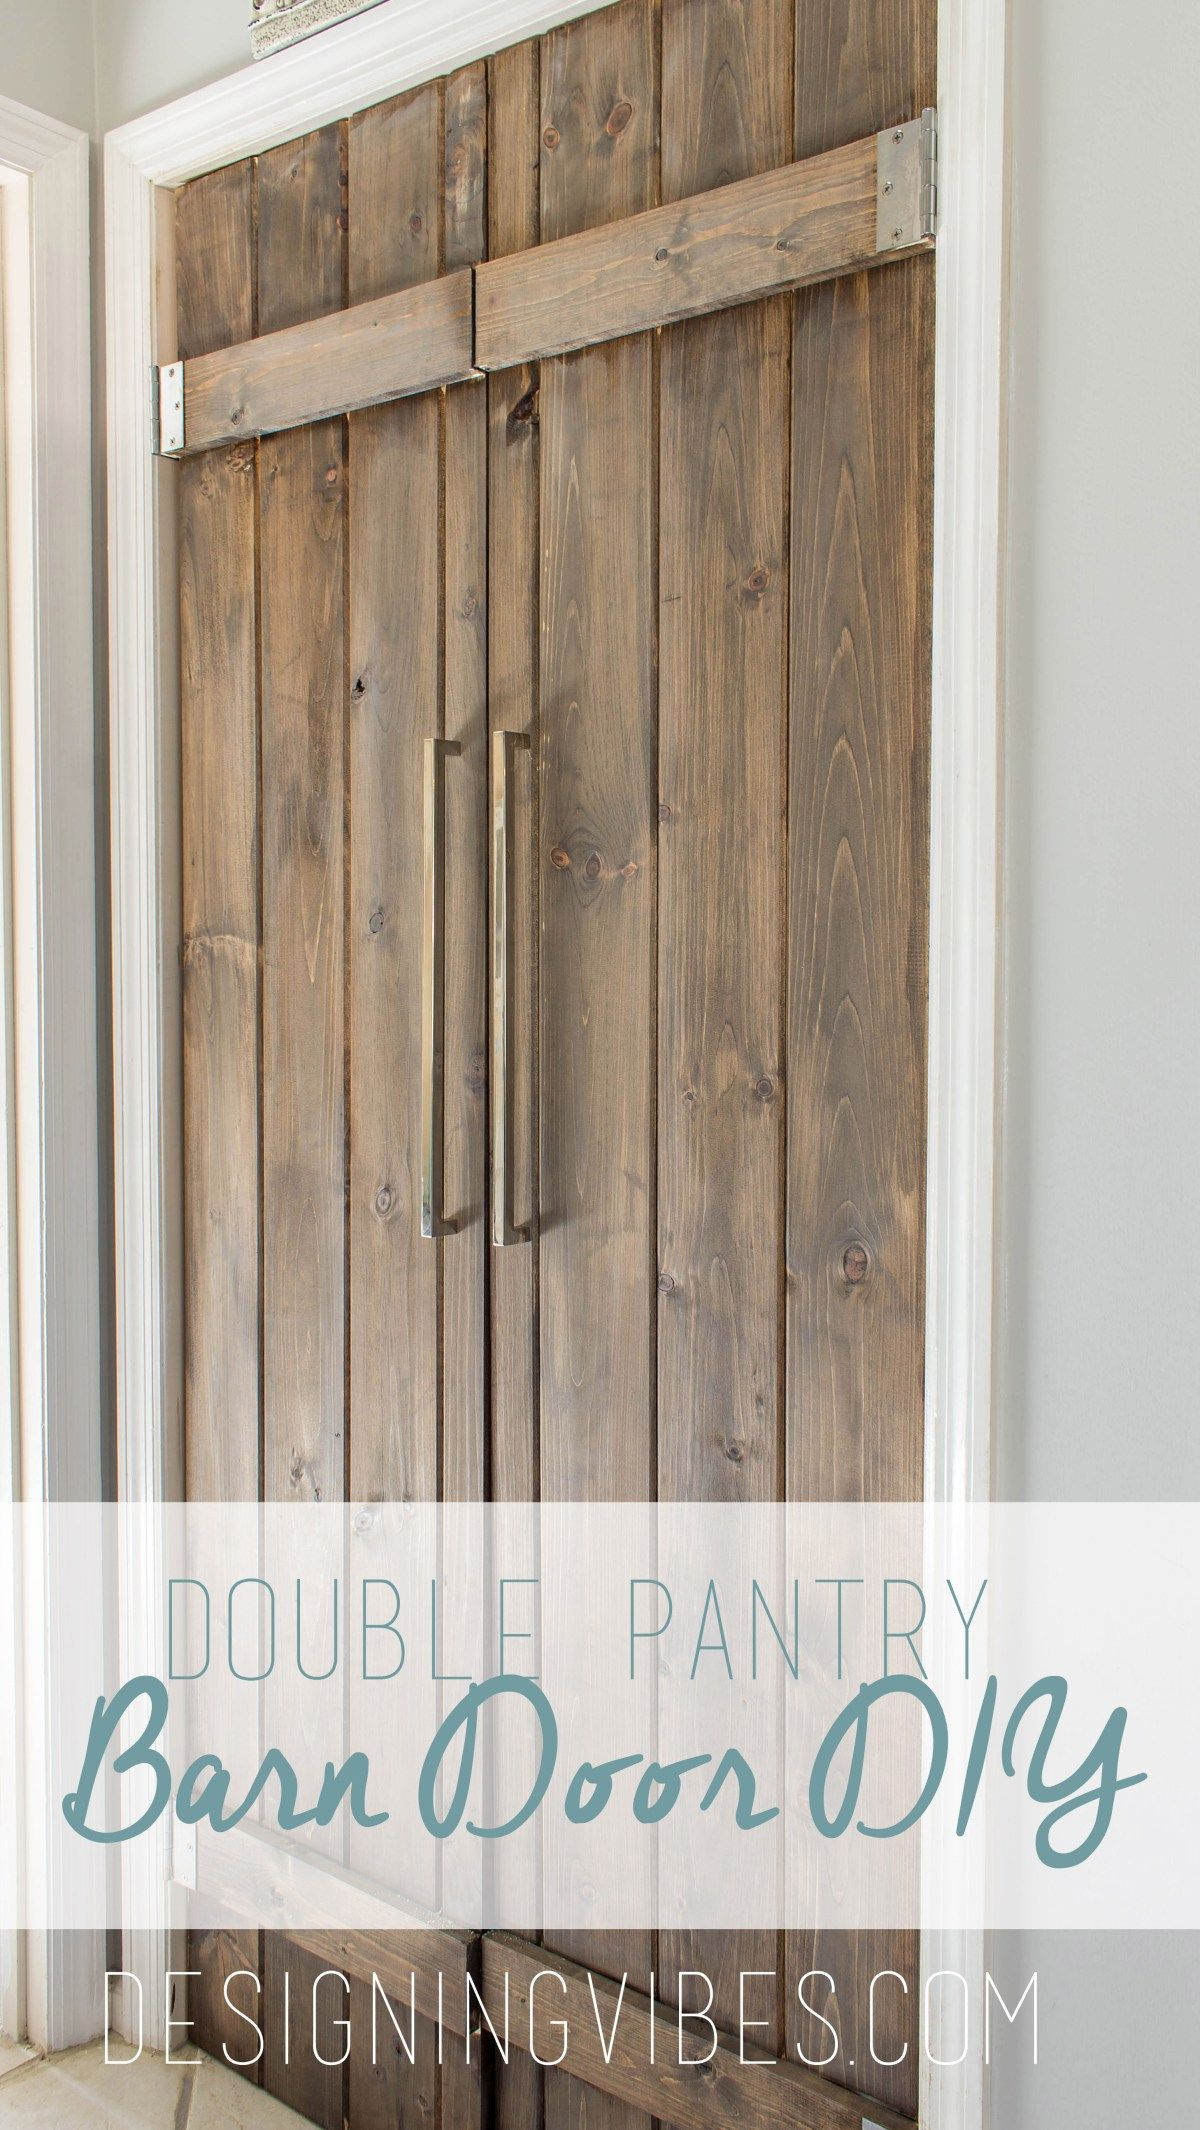 Double Pantry Barn Door DIY Under $90 Bifold Pantry Door DIY